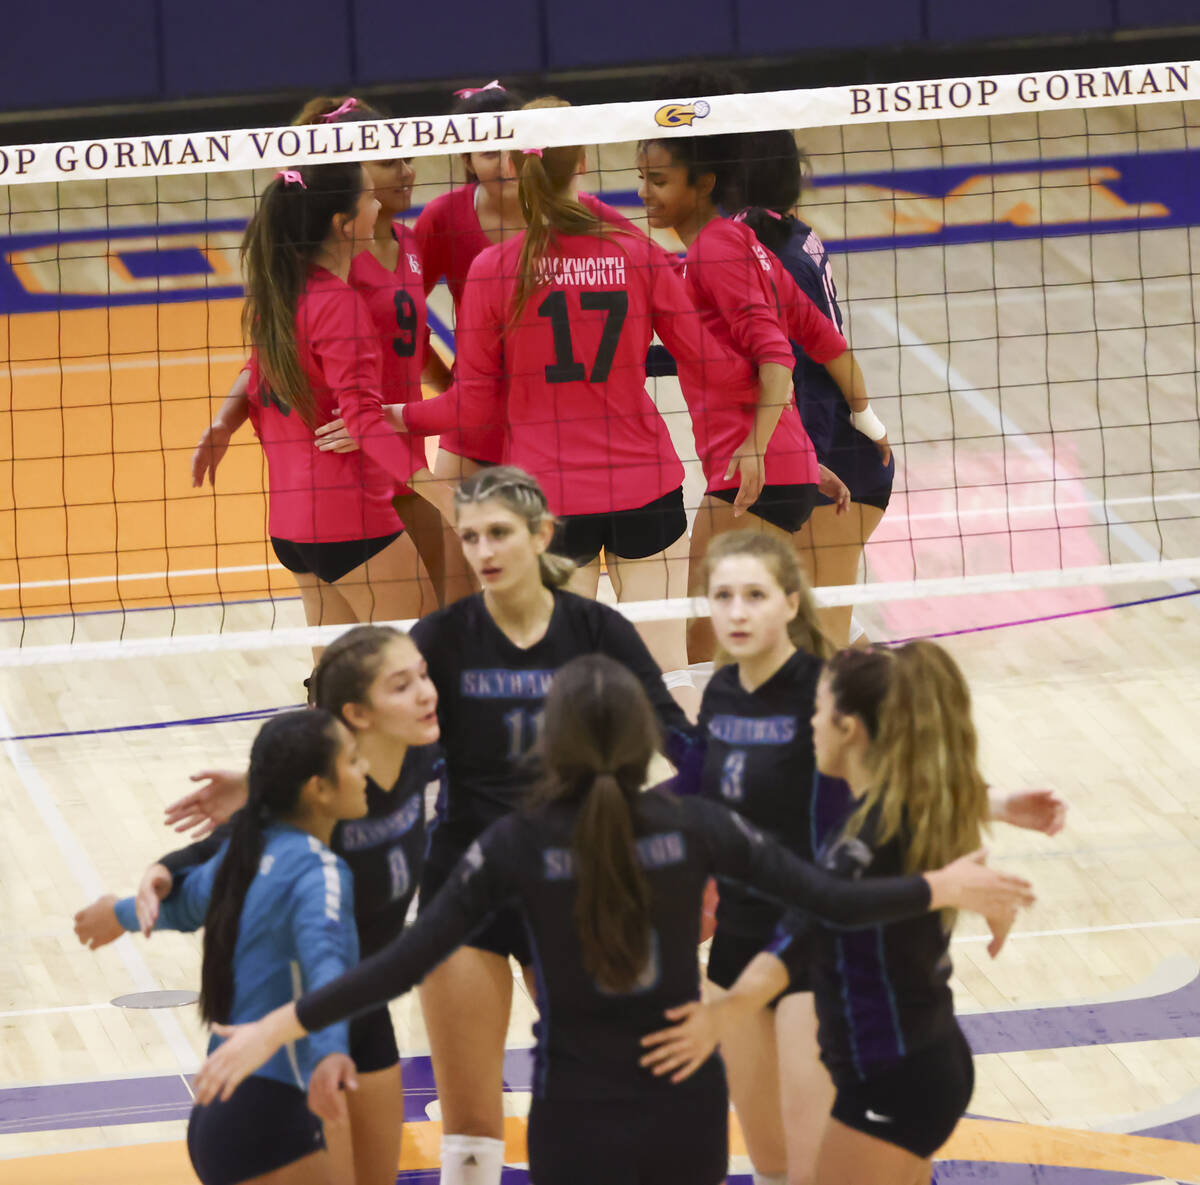 Bishop Gorman and Silverado players huddle after a play during a volleyball game at Bishop Gorm ...